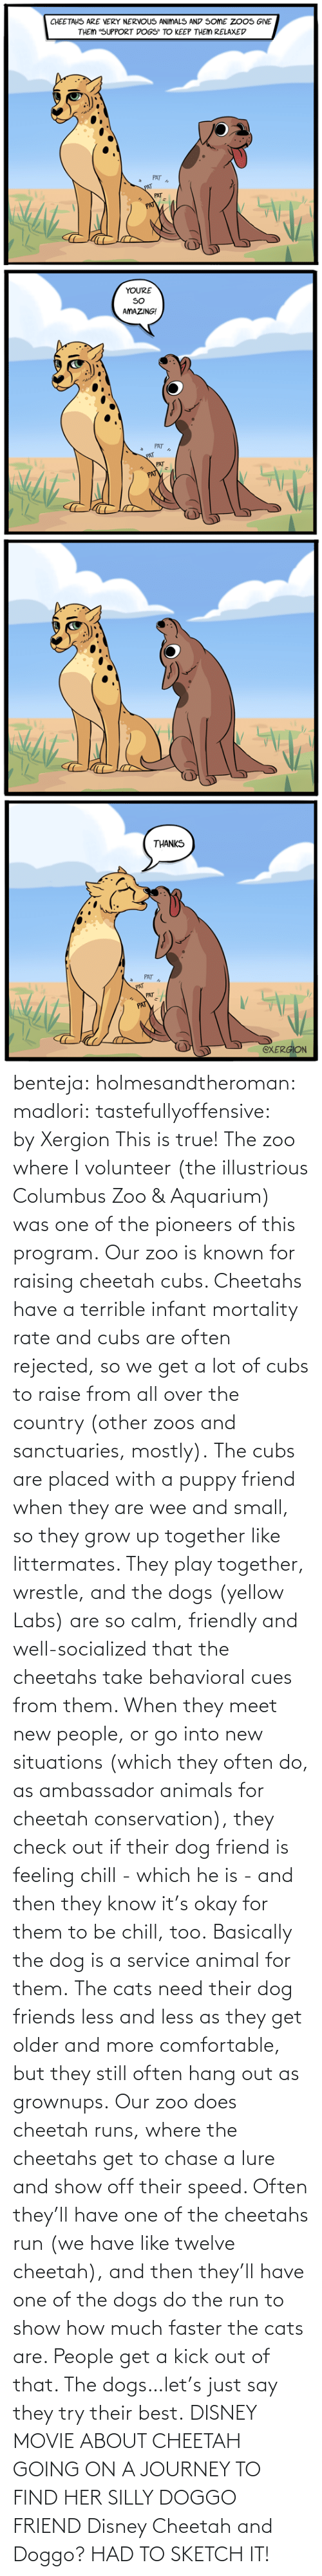 zoo: benteja:  holmesandtheroman:  madlori:  tastefullyoffensive: by Xergion This is true! The zoo where I volunteer (the illustrious Columbus Zoo & Aquarium) was one of the pioneers of this program. Our zoo is known for raising cheetah cubs. Cheetahs have a terrible infant mortality rate and cubs are often rejected, so we get a lot of cubs to raise from all over the country (other zoos and sanctuaries, mostly). The cubs are placed with a puppy friend when they are wee and small, so they grow up together like littermates. They play together, wrestle, and the dogs (yellow Labs) are so calm, friendly and well-socialized that the cheetahs take behavioral cues from them. When they meet new people, or go into new situations (which they often do, as ambassador animals for cheetah conservation), they check out if their dog friend is feeling chill - which he is - and then they know it's okay for them to be chill, too. Basically the dog is a service animal for them. The cats need their dog friends less and less as they get older and more comfortable, but they still often hang out as grownups. Our zoo does cheetah runs, where the cheetahs get to chase a lure and show off their speed. Often they'll have one of the cheetahs run (we have like twelve cheetah), and then they'll have one of the dogs do the run to show how much faster the cats are. People get a kick out of that. The dogs…let's just say they try their best.   DISNEY MOVIE ABOUT CHEETAH GOING ON A JOURNEY TO FIND HER SILLY DOGGO FRIEND  Disney Cheetah and Doggo? HAD TO SKETCH IT!